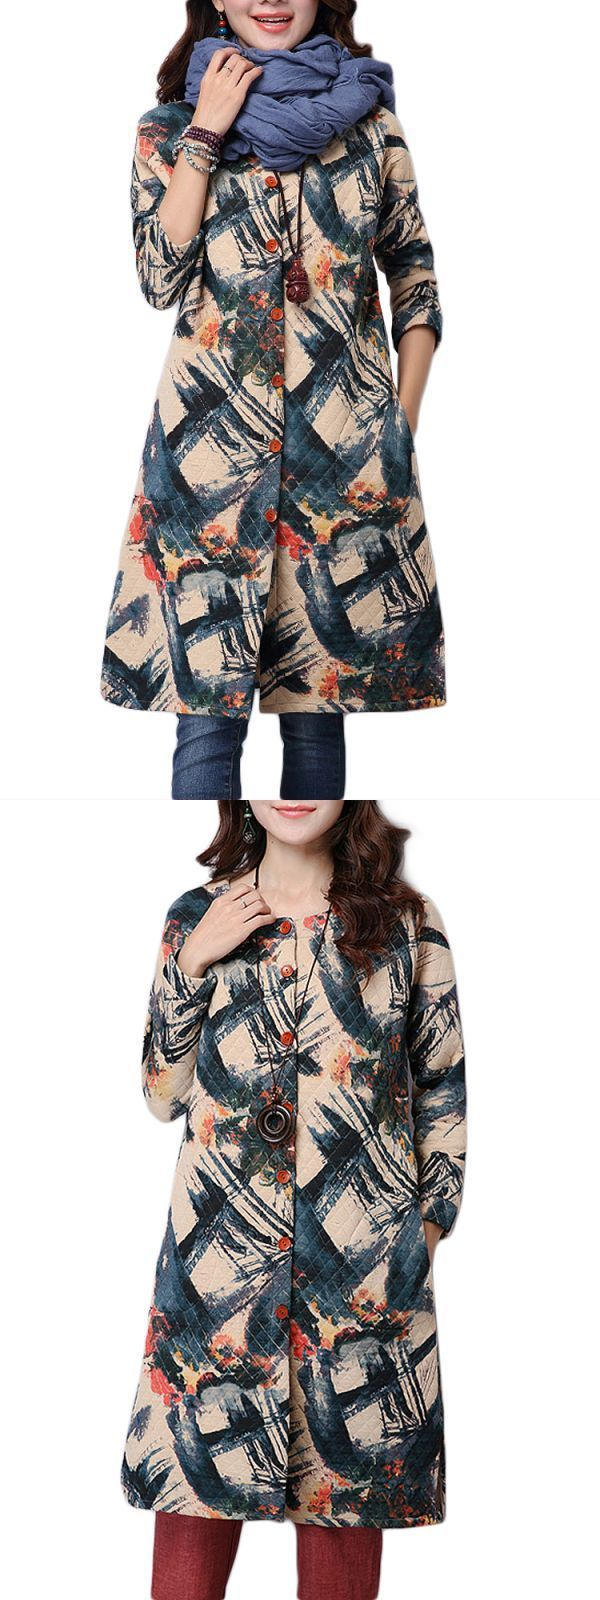 Eamp;o coats women print single breasted loose long sleeve vintage coat #coats #epic #thread #coats #in #spanish #coats #lord #and #taylor #j #w #coats